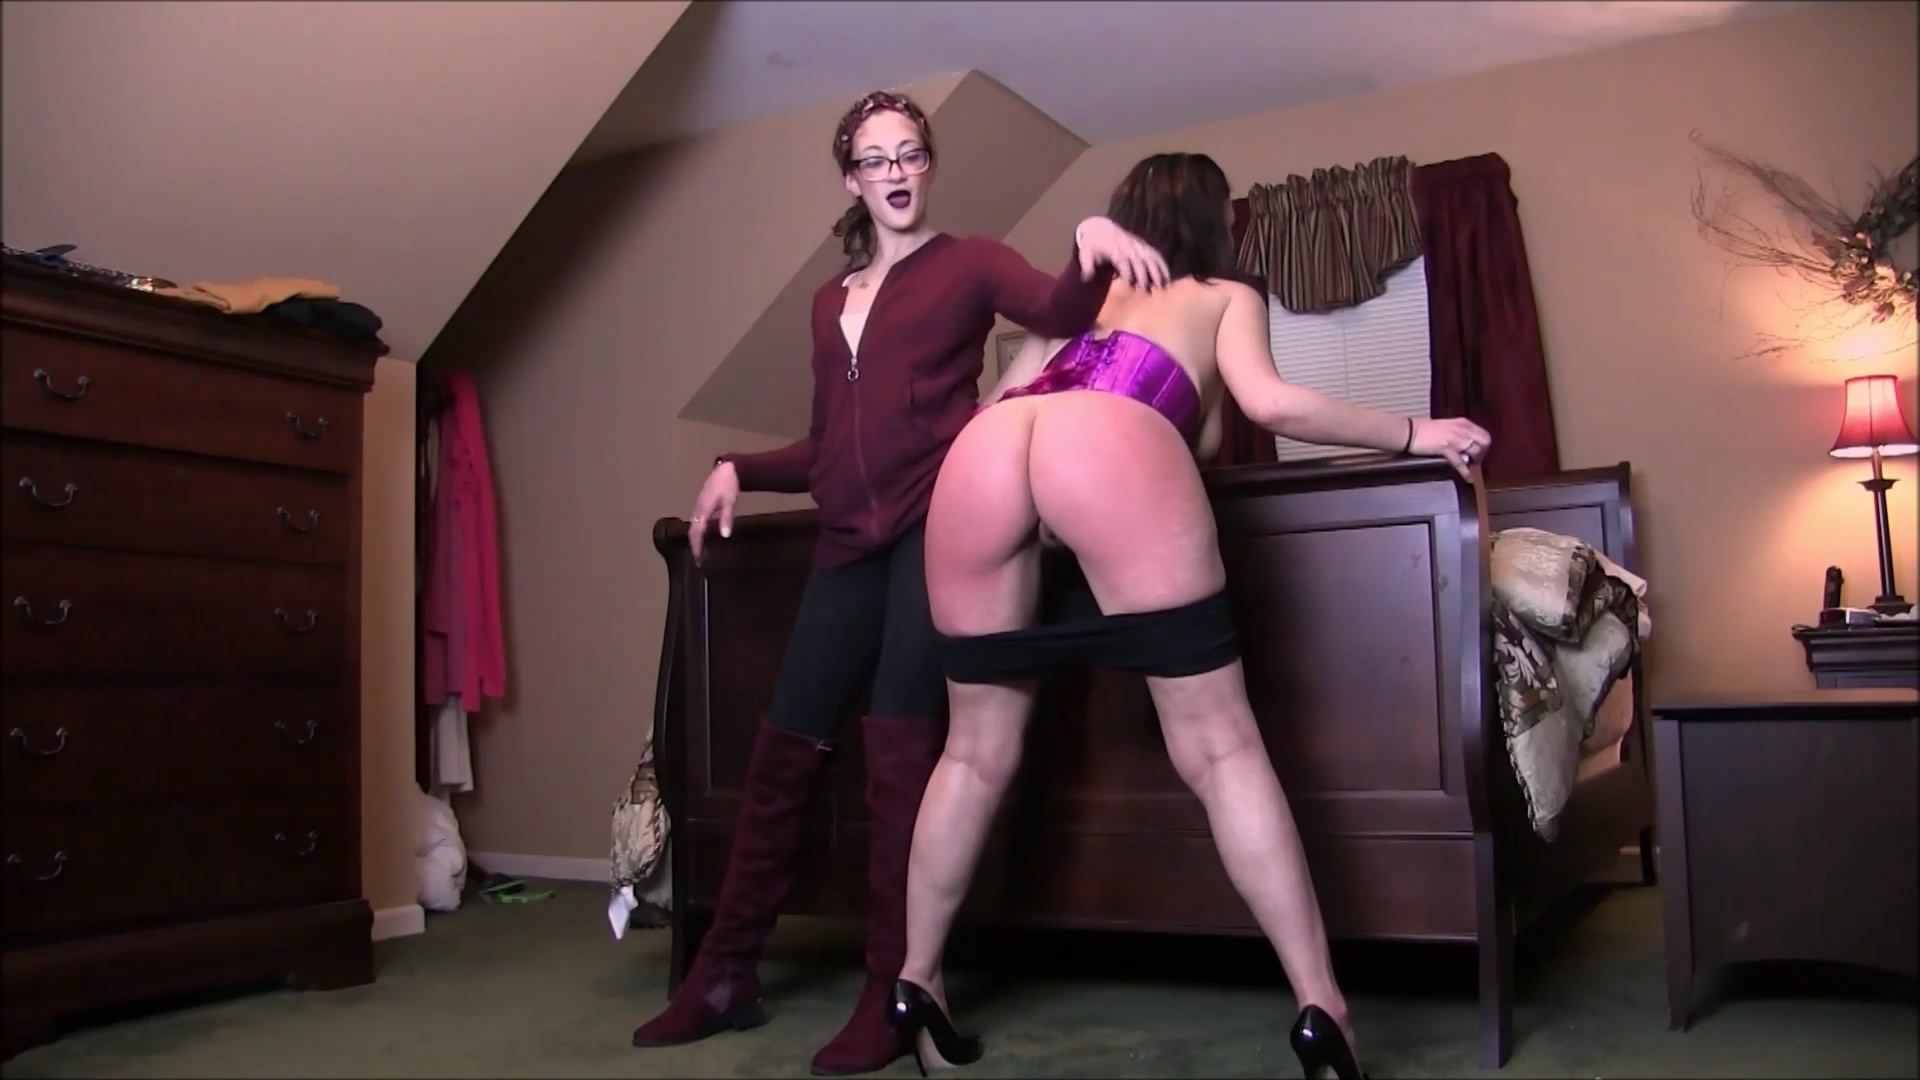 Punished Brats – MP4/Full HD –Audrey – Best of 2019 – Part 1